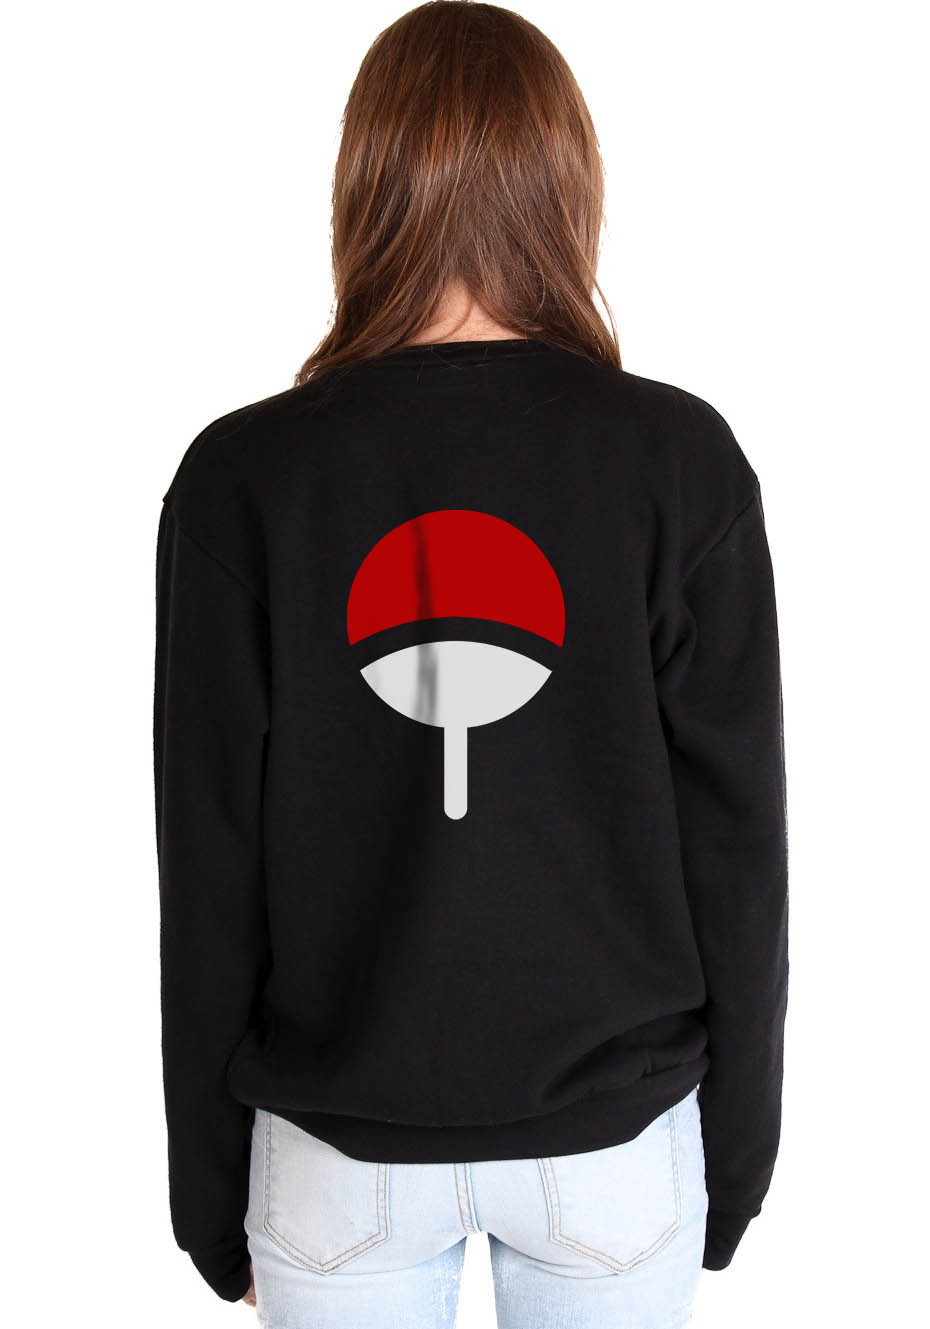 Primary image for Uchiha Clan Symbol on back Naruto Unisex Crewneck Sweatshirt BLACK